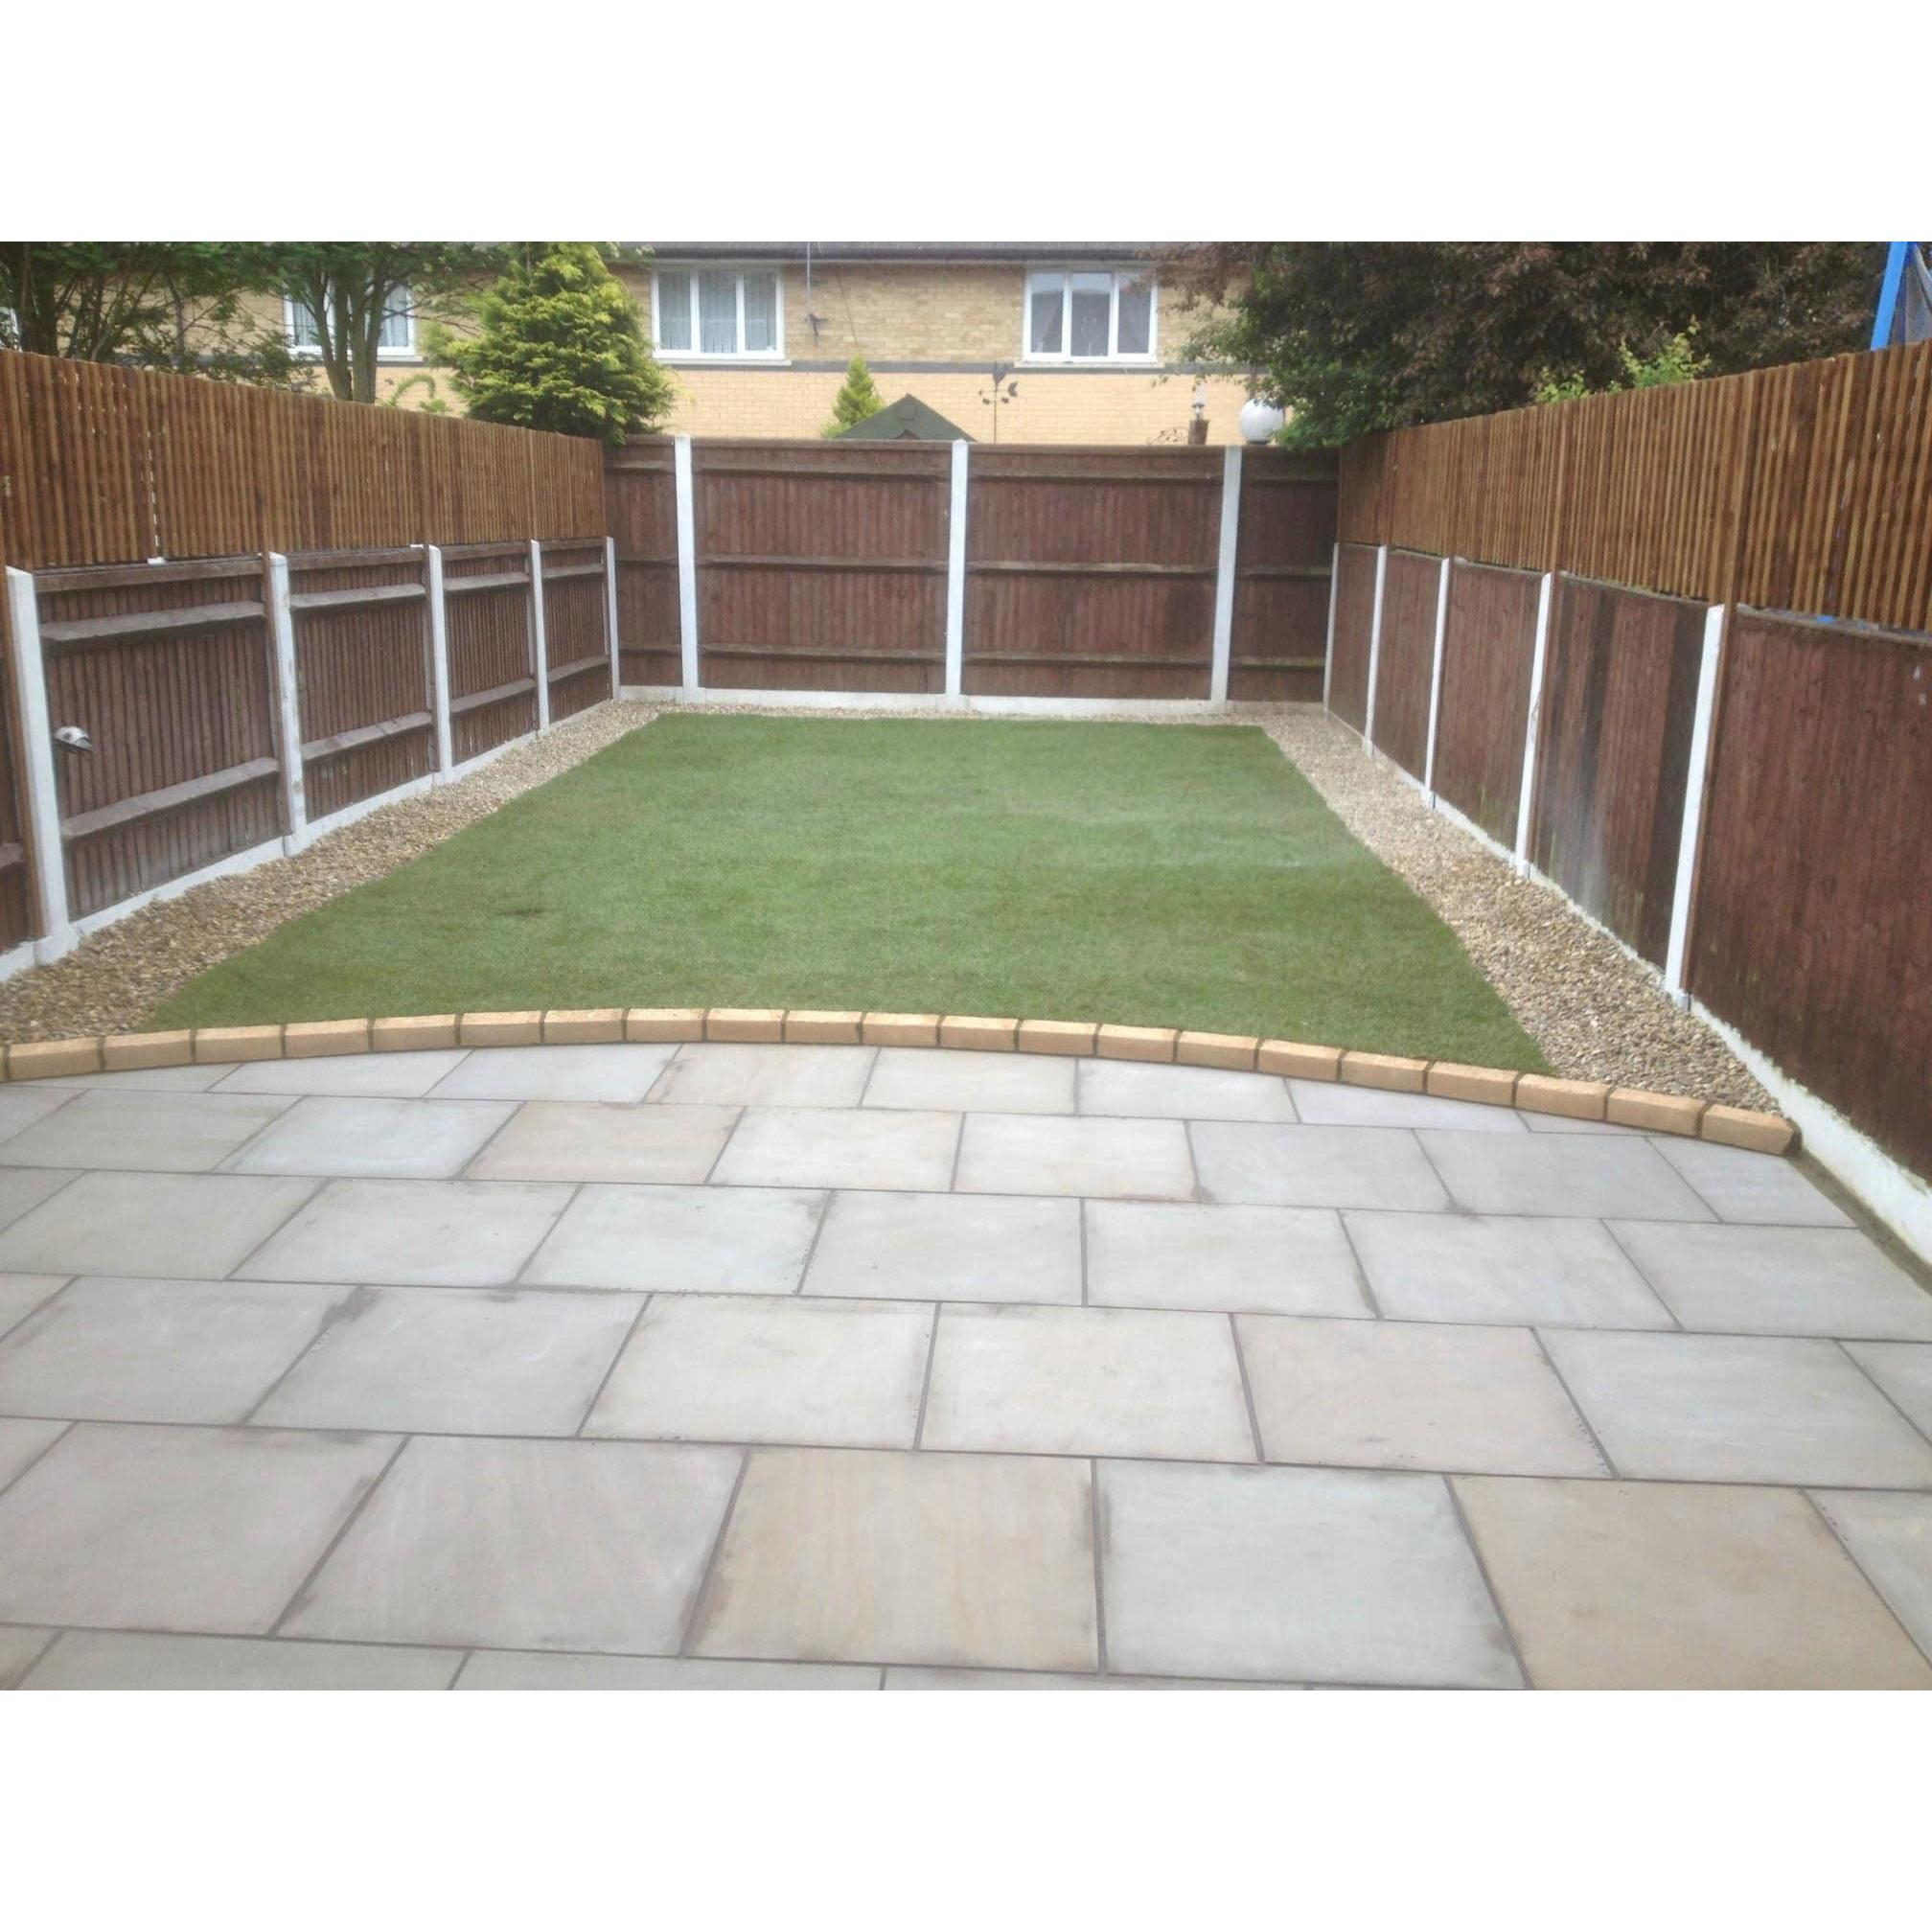 Bloomin Lovely Fencing & Garden Services Ltd - London, London E4 8AN - 020 8523 9157 | ShowMeLocal.com